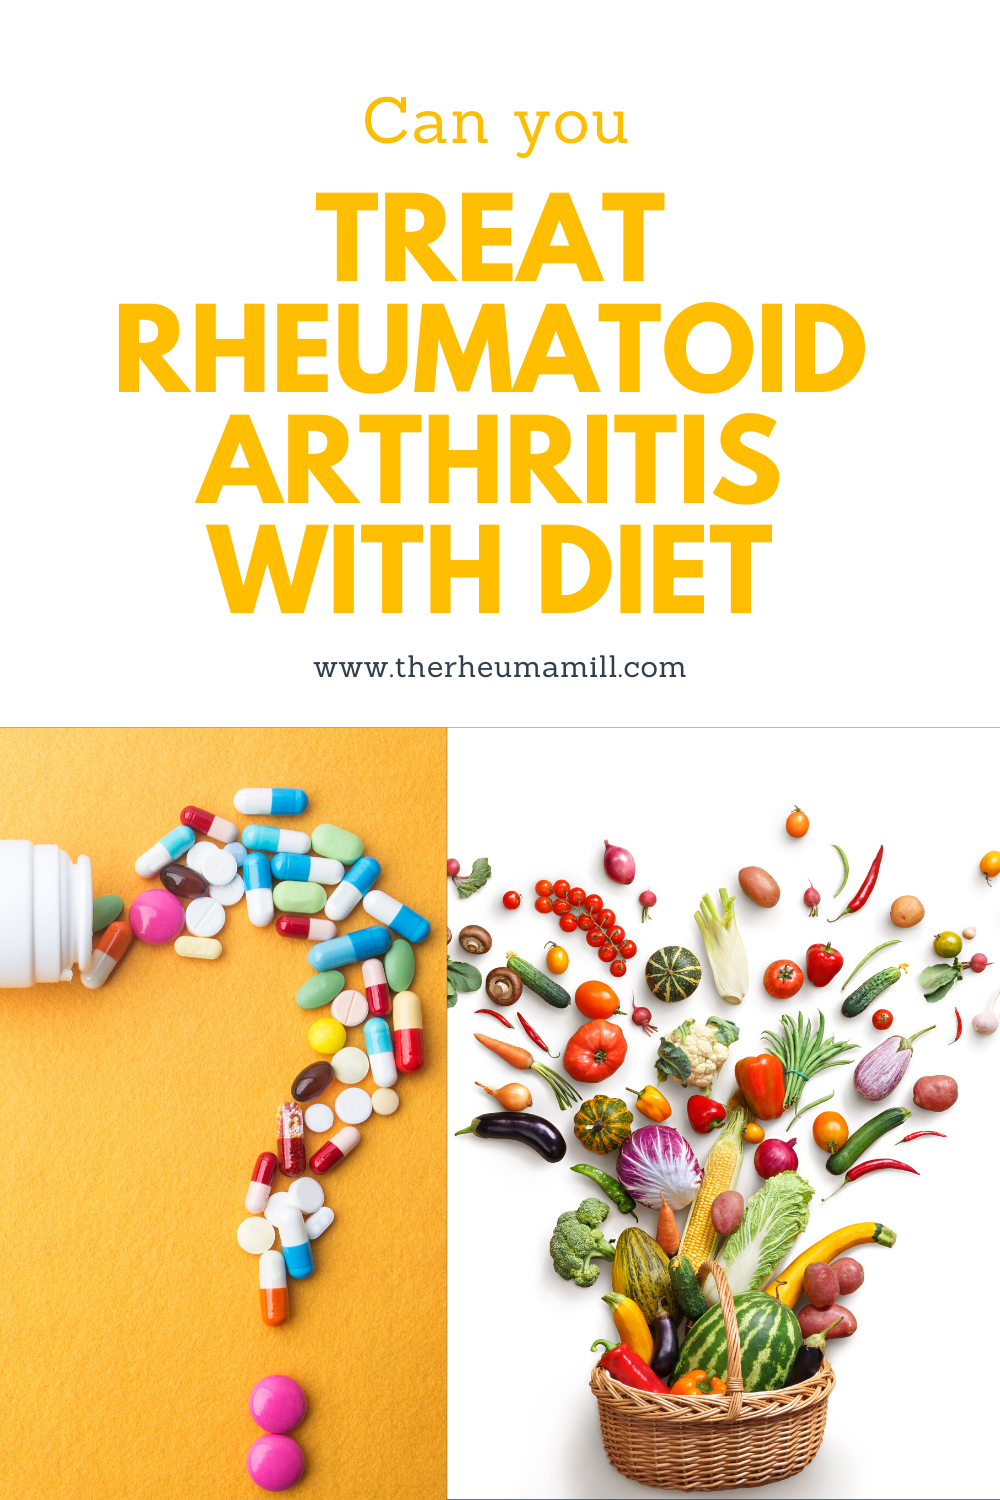 Can you treat rheumatoid arthritis with diet?